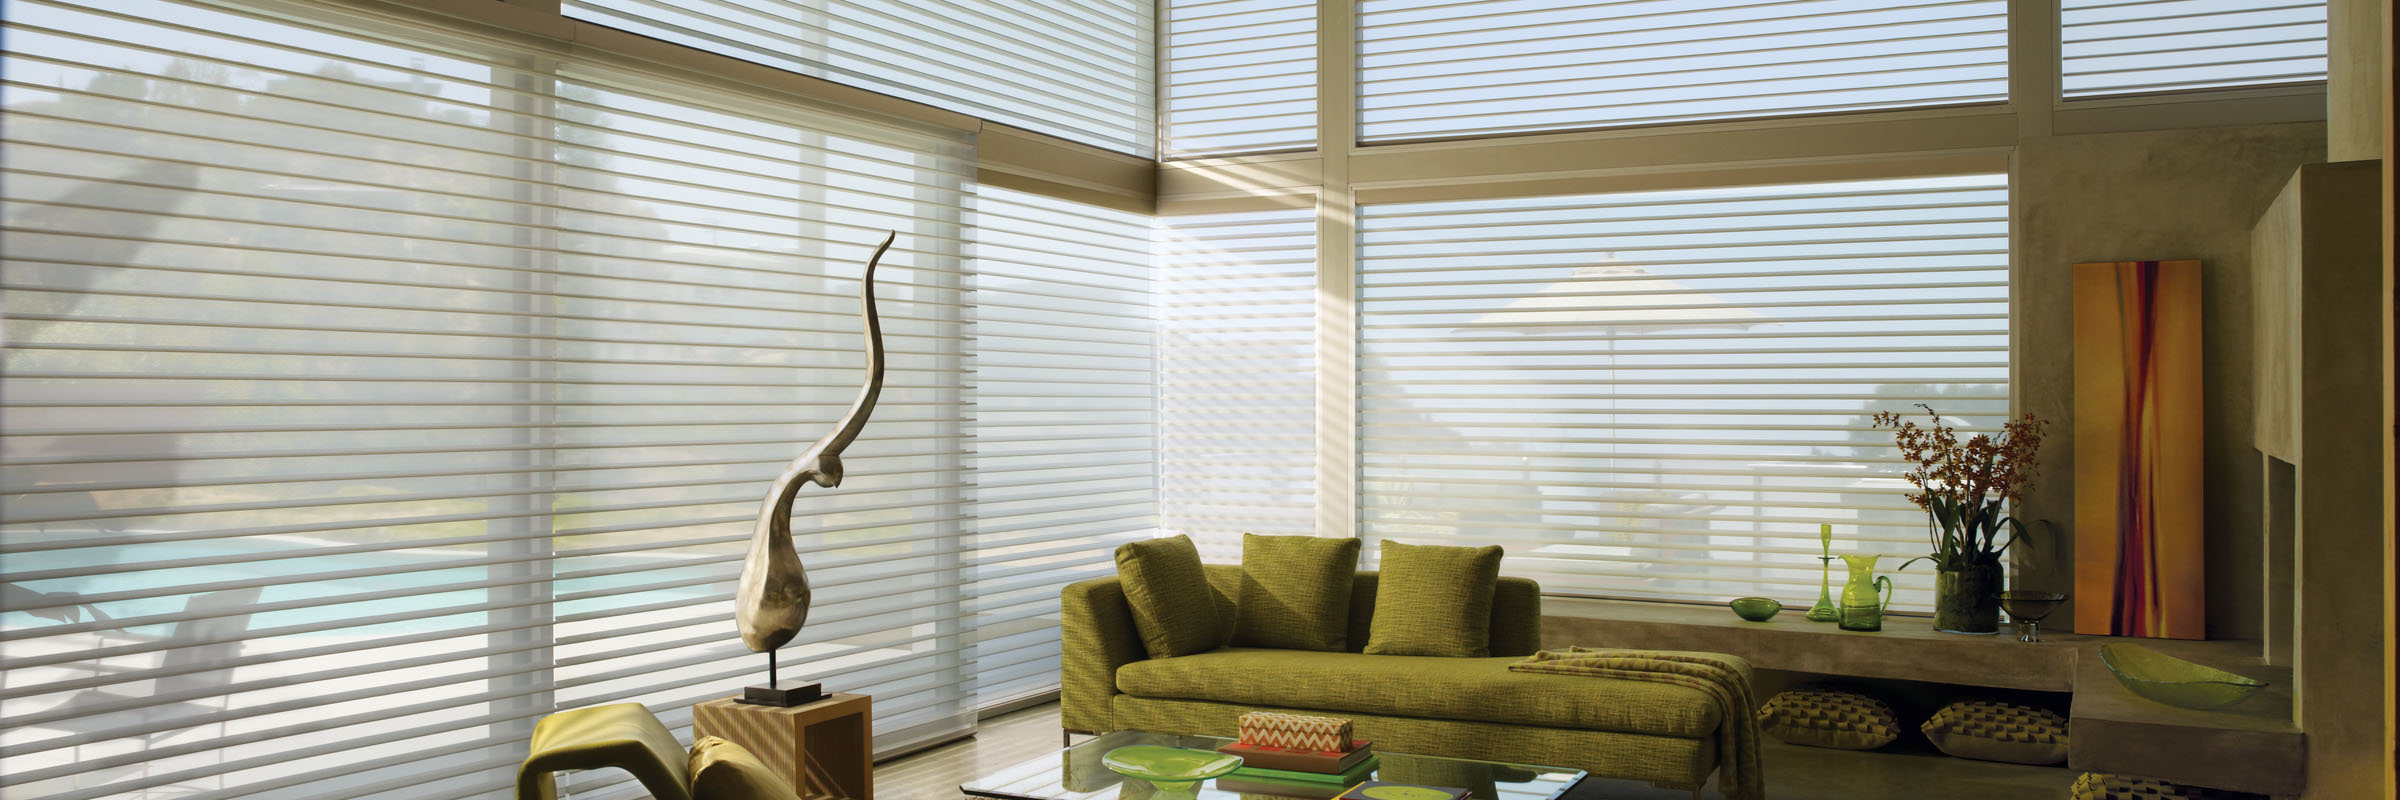 douglas in bauhaus douglass shutter products top waterloo blind vignette hunter pirouette blinds